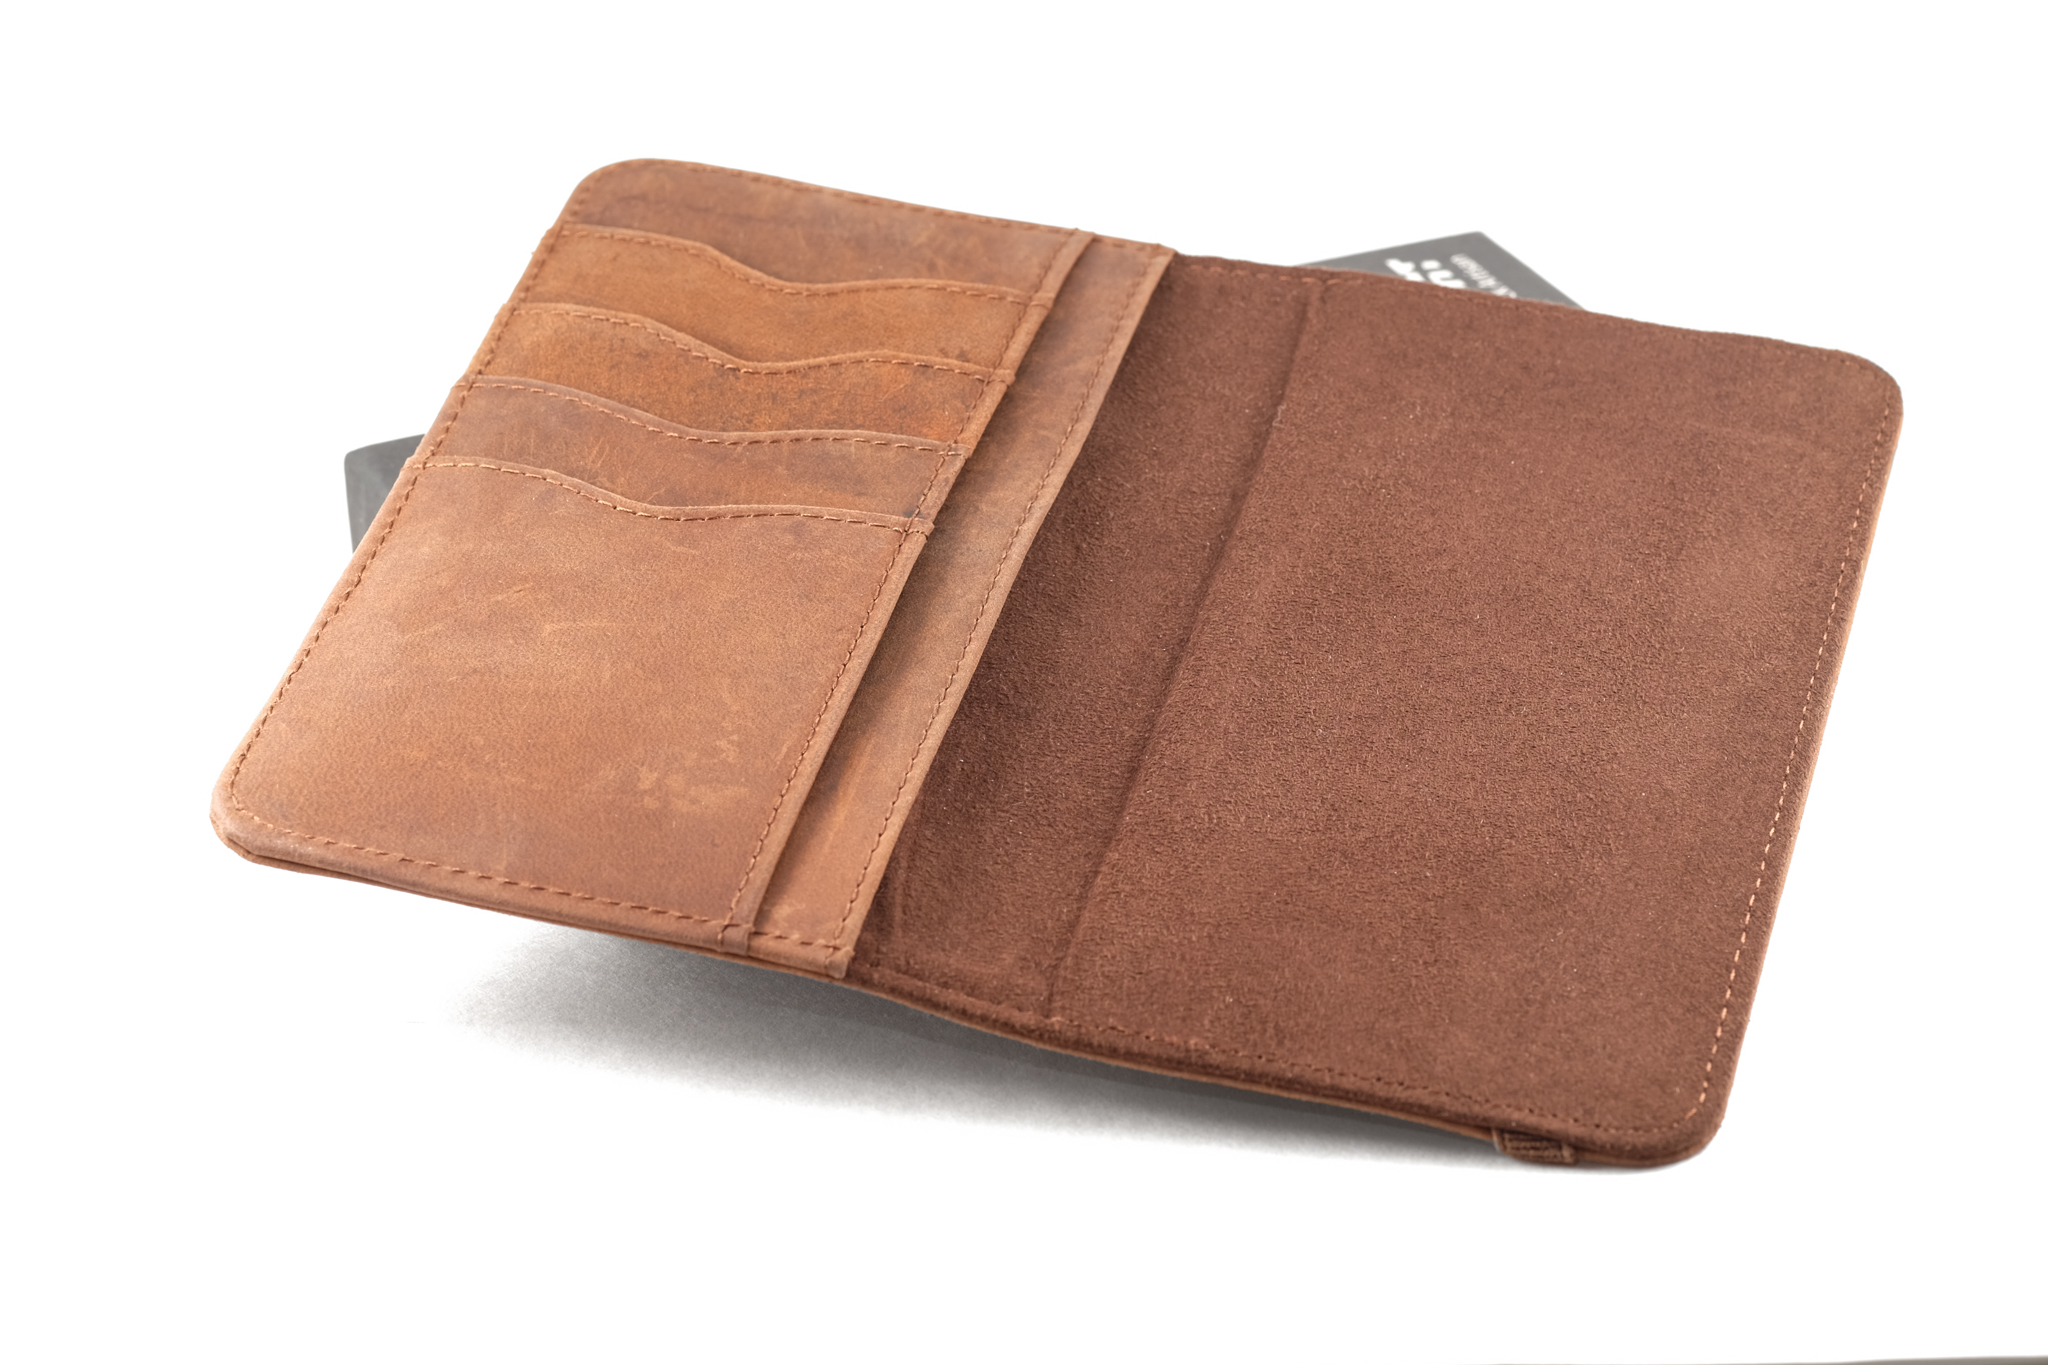 Here's the wallet without the shell case. The hidden magnets are... hidden.